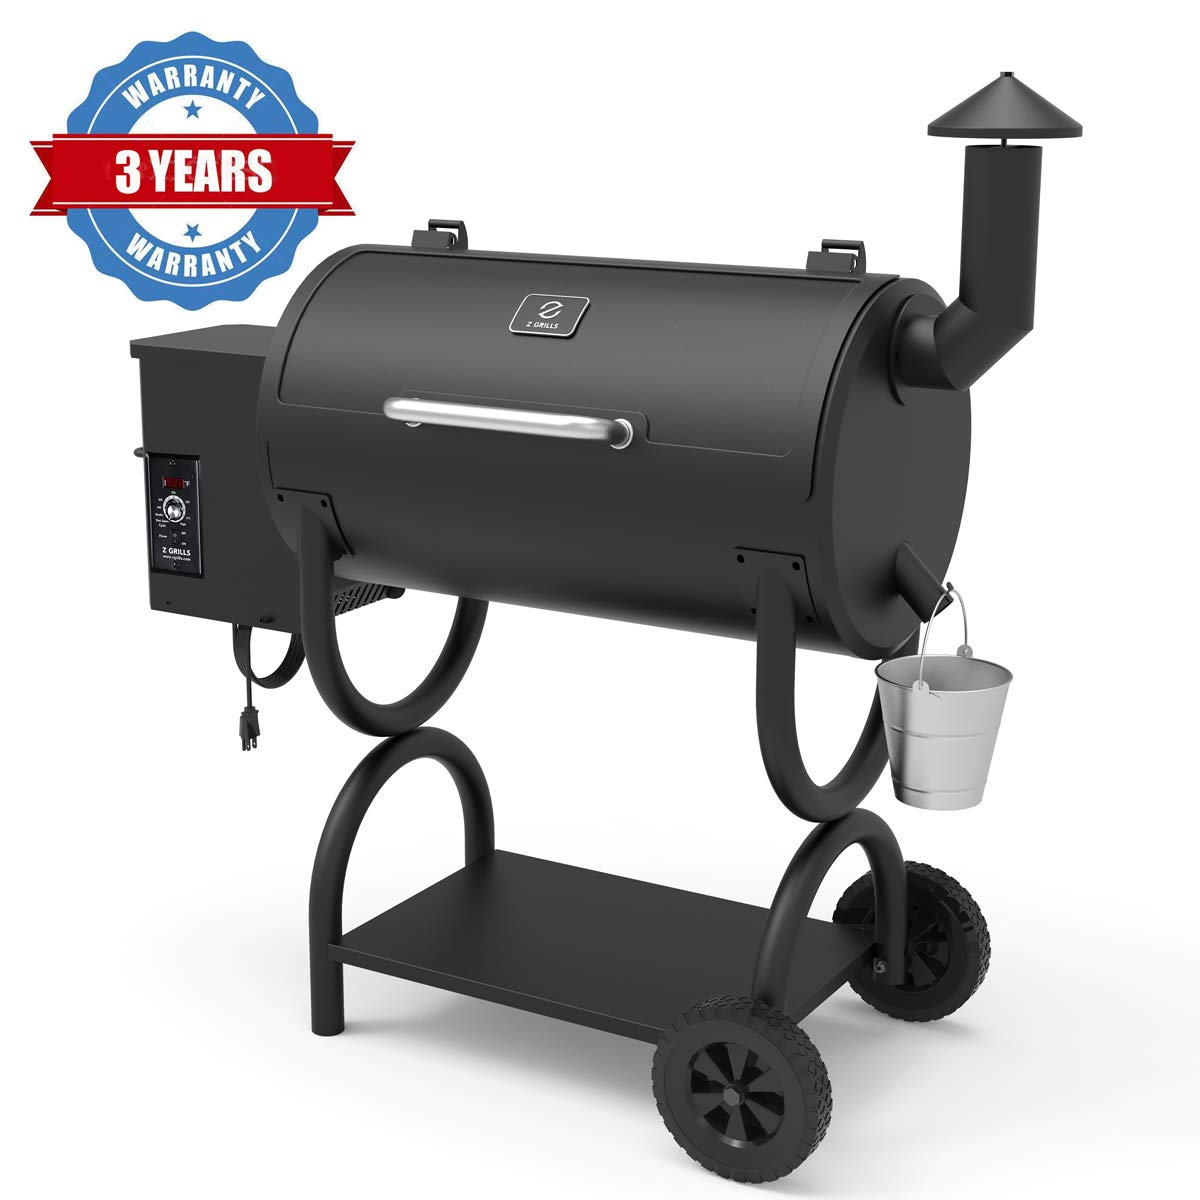 Z GRILLS Wood Pellet Grill 2019 Model 7-in-1 BBQ Smoker with PID Controller for Outdoor Cooking 550SQIN Barbecue Area 10LB Hopper (ZPG-550B) by Z GRILLS